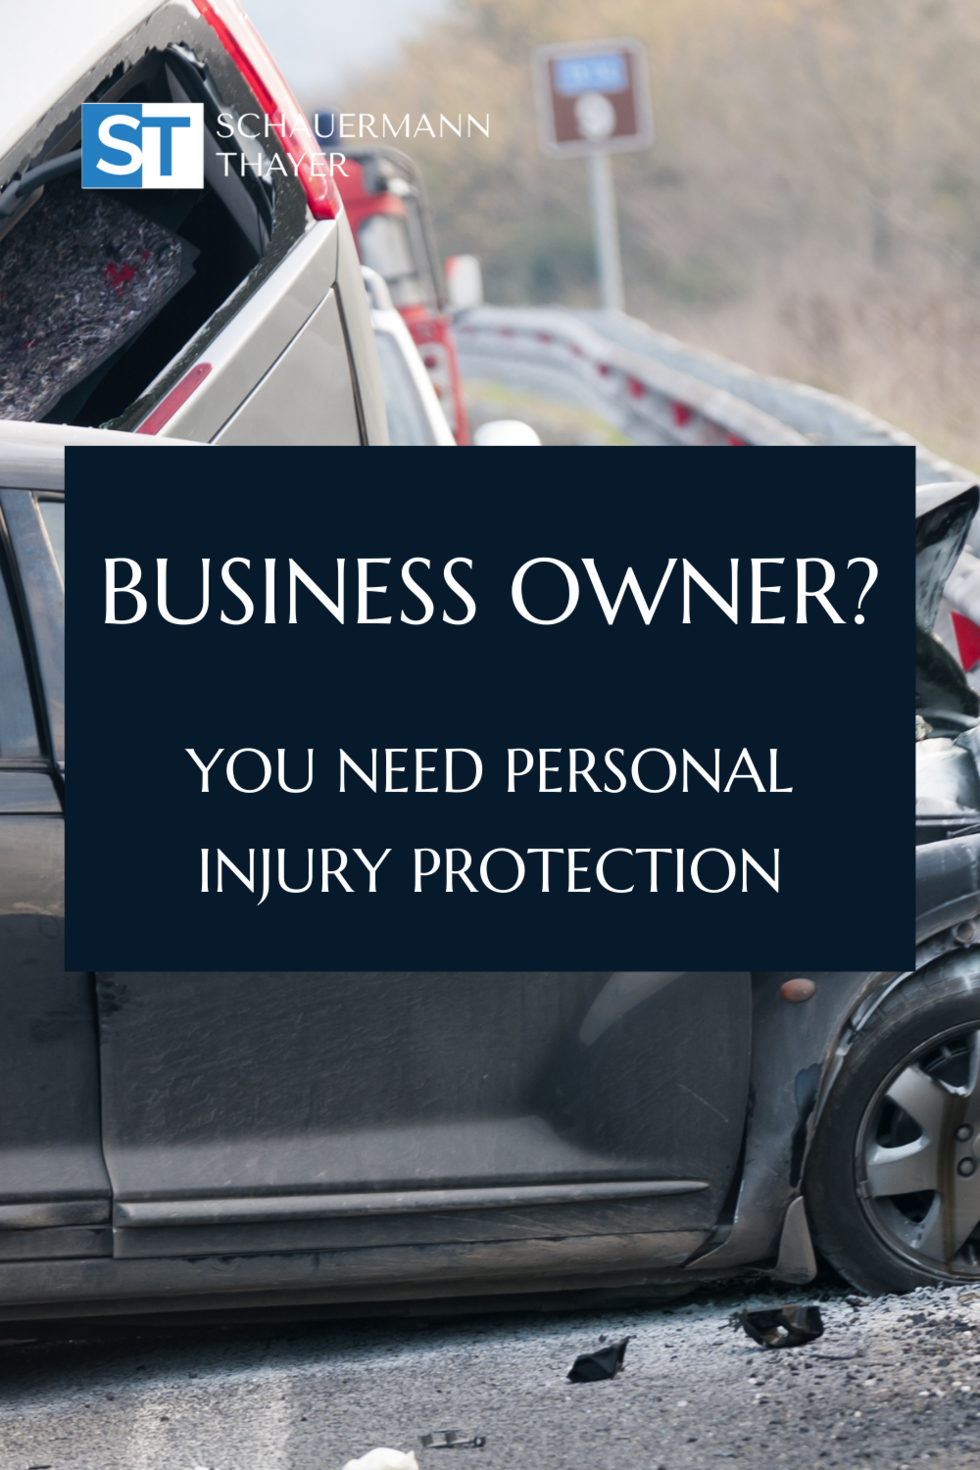 Personal_injury_protection_buisness_owners